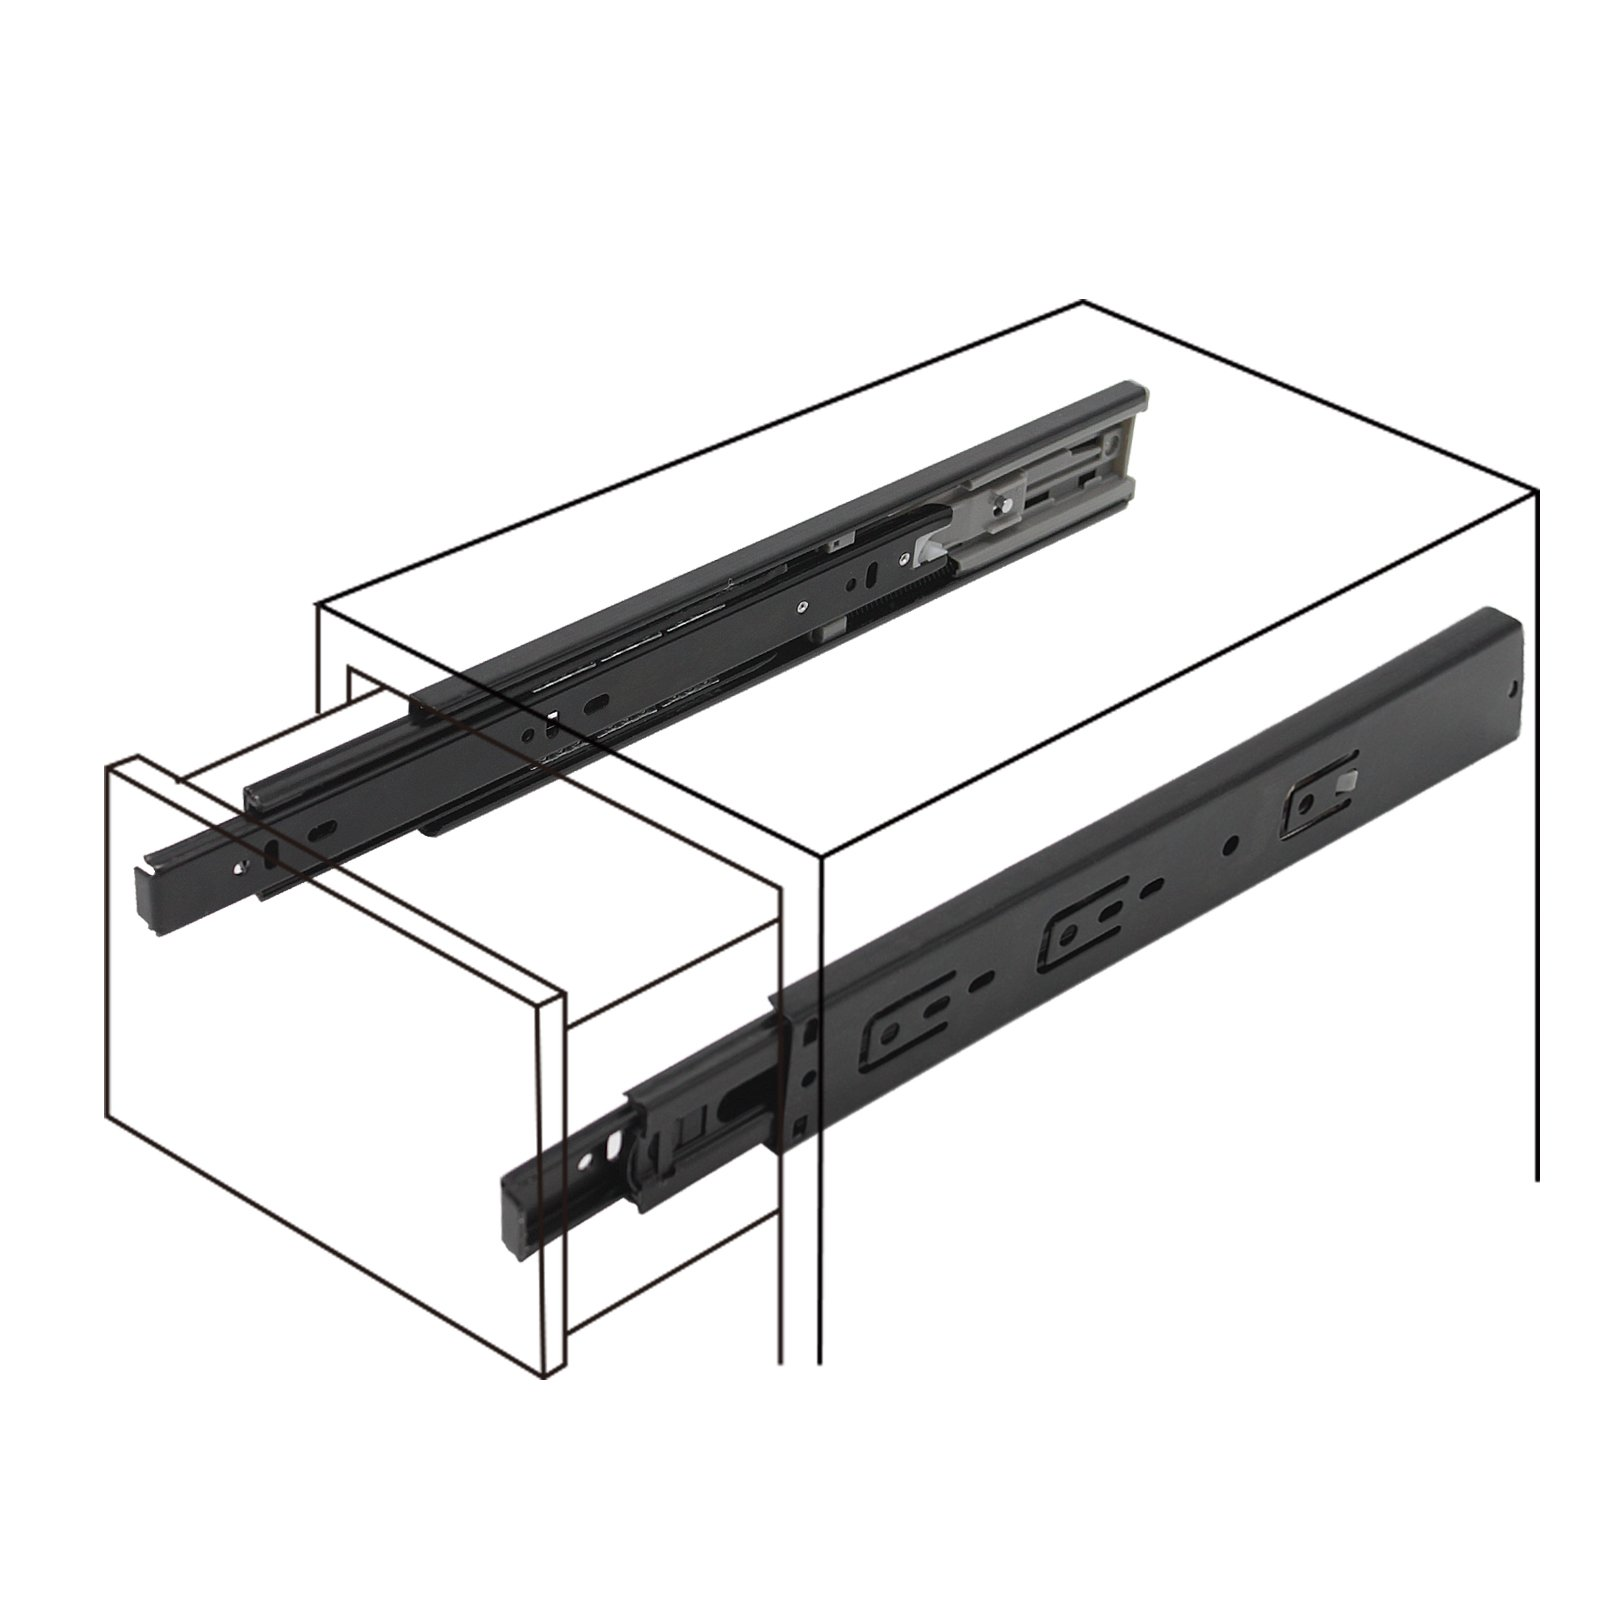 Probrico 10 Pair of 12 Inch Hardware Ball Bearing Side Mount Drawer Slides, Full Extension, Available in 12'',14'',16'',18'',20'',22'', 24'' Lengths by Probrico (Image #6)